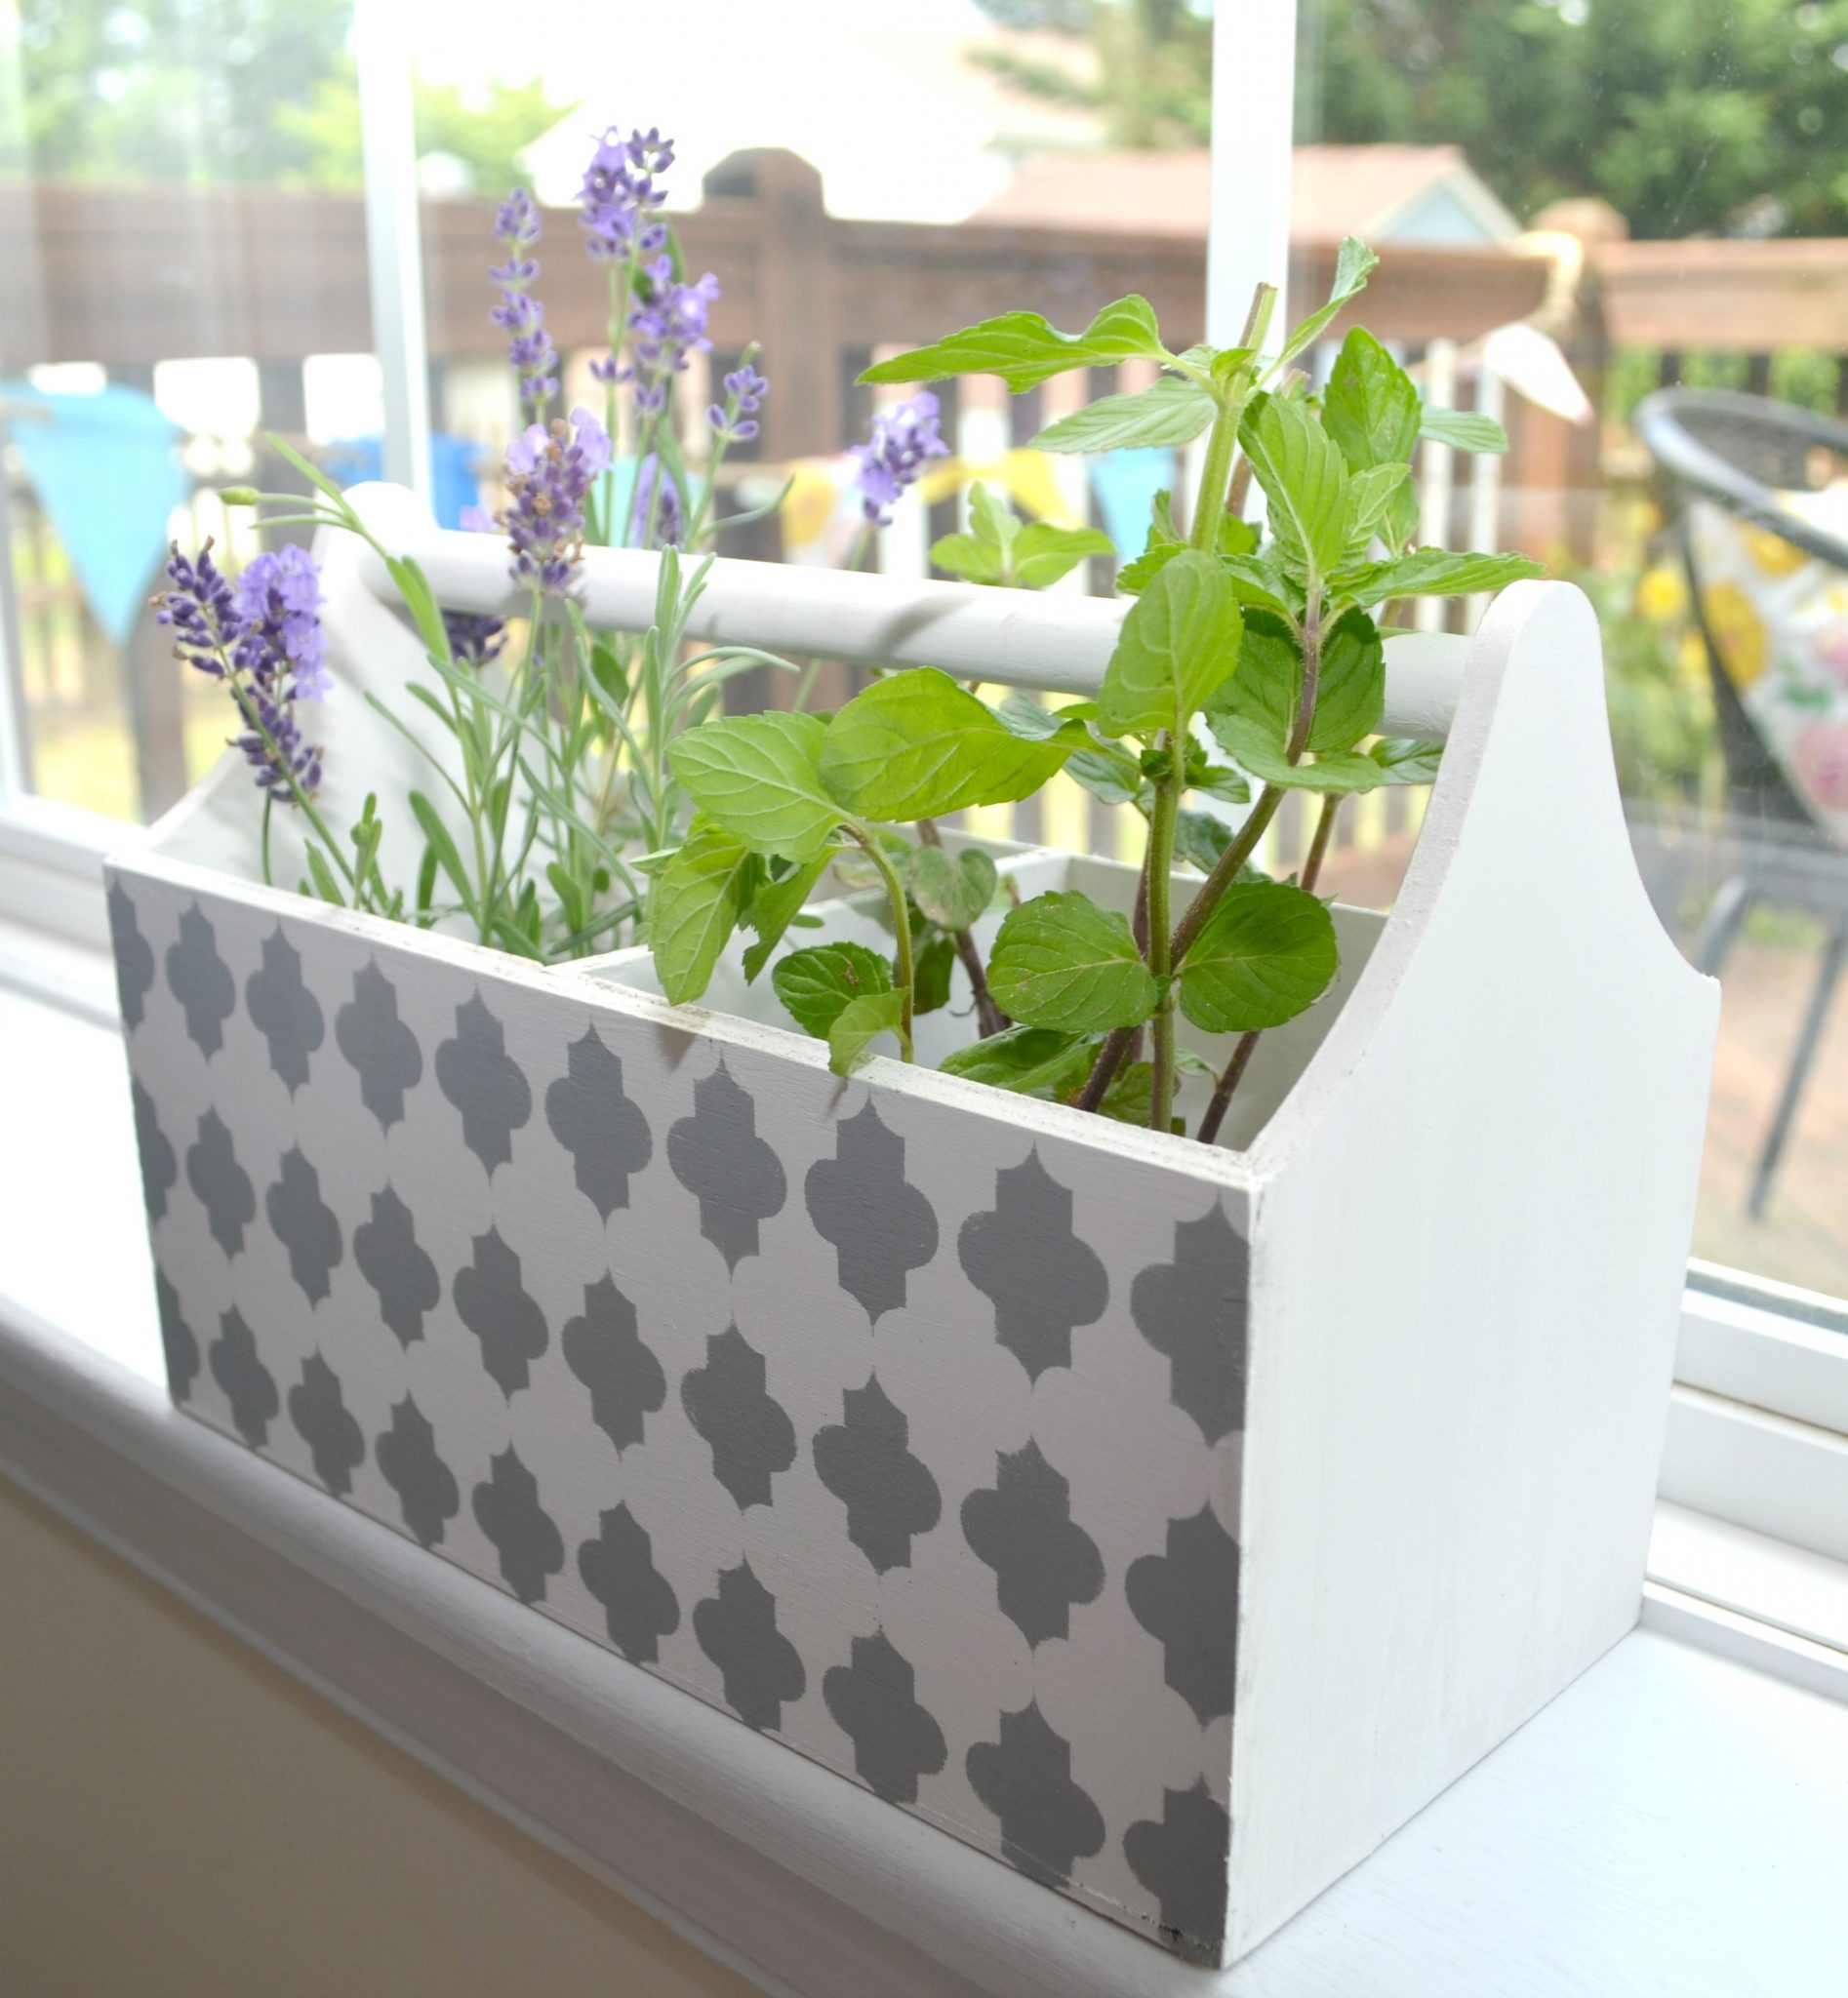 Stenciled Planter for Herbs